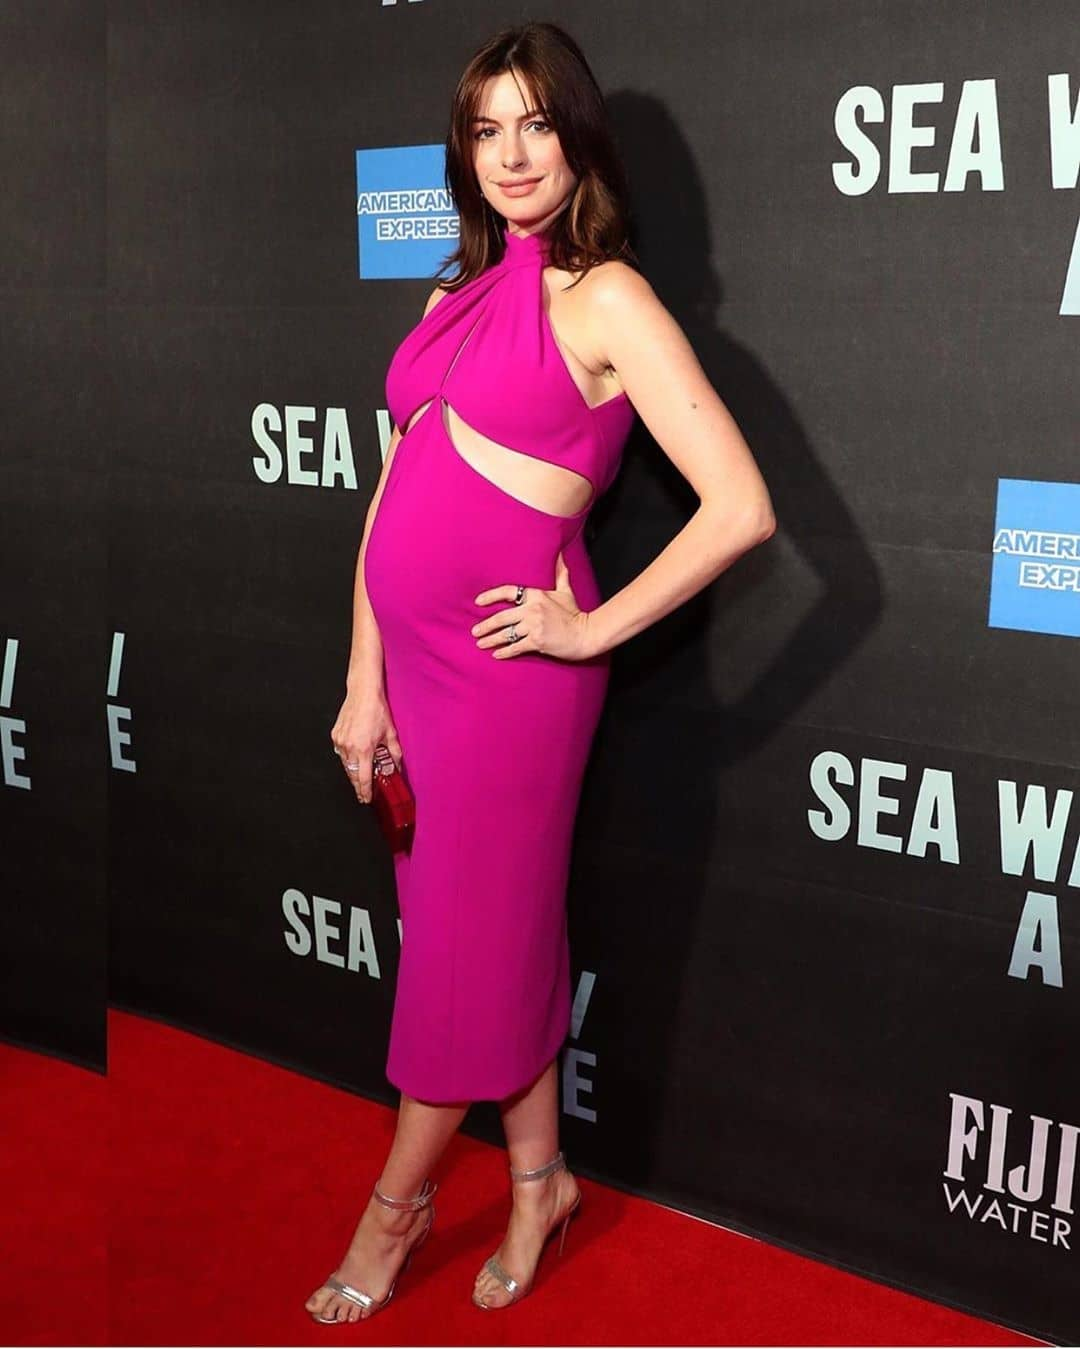 Anne-hathaway-brandon-maxwell-pregnancy-maternity-style-pregnant-fashion-style-rave